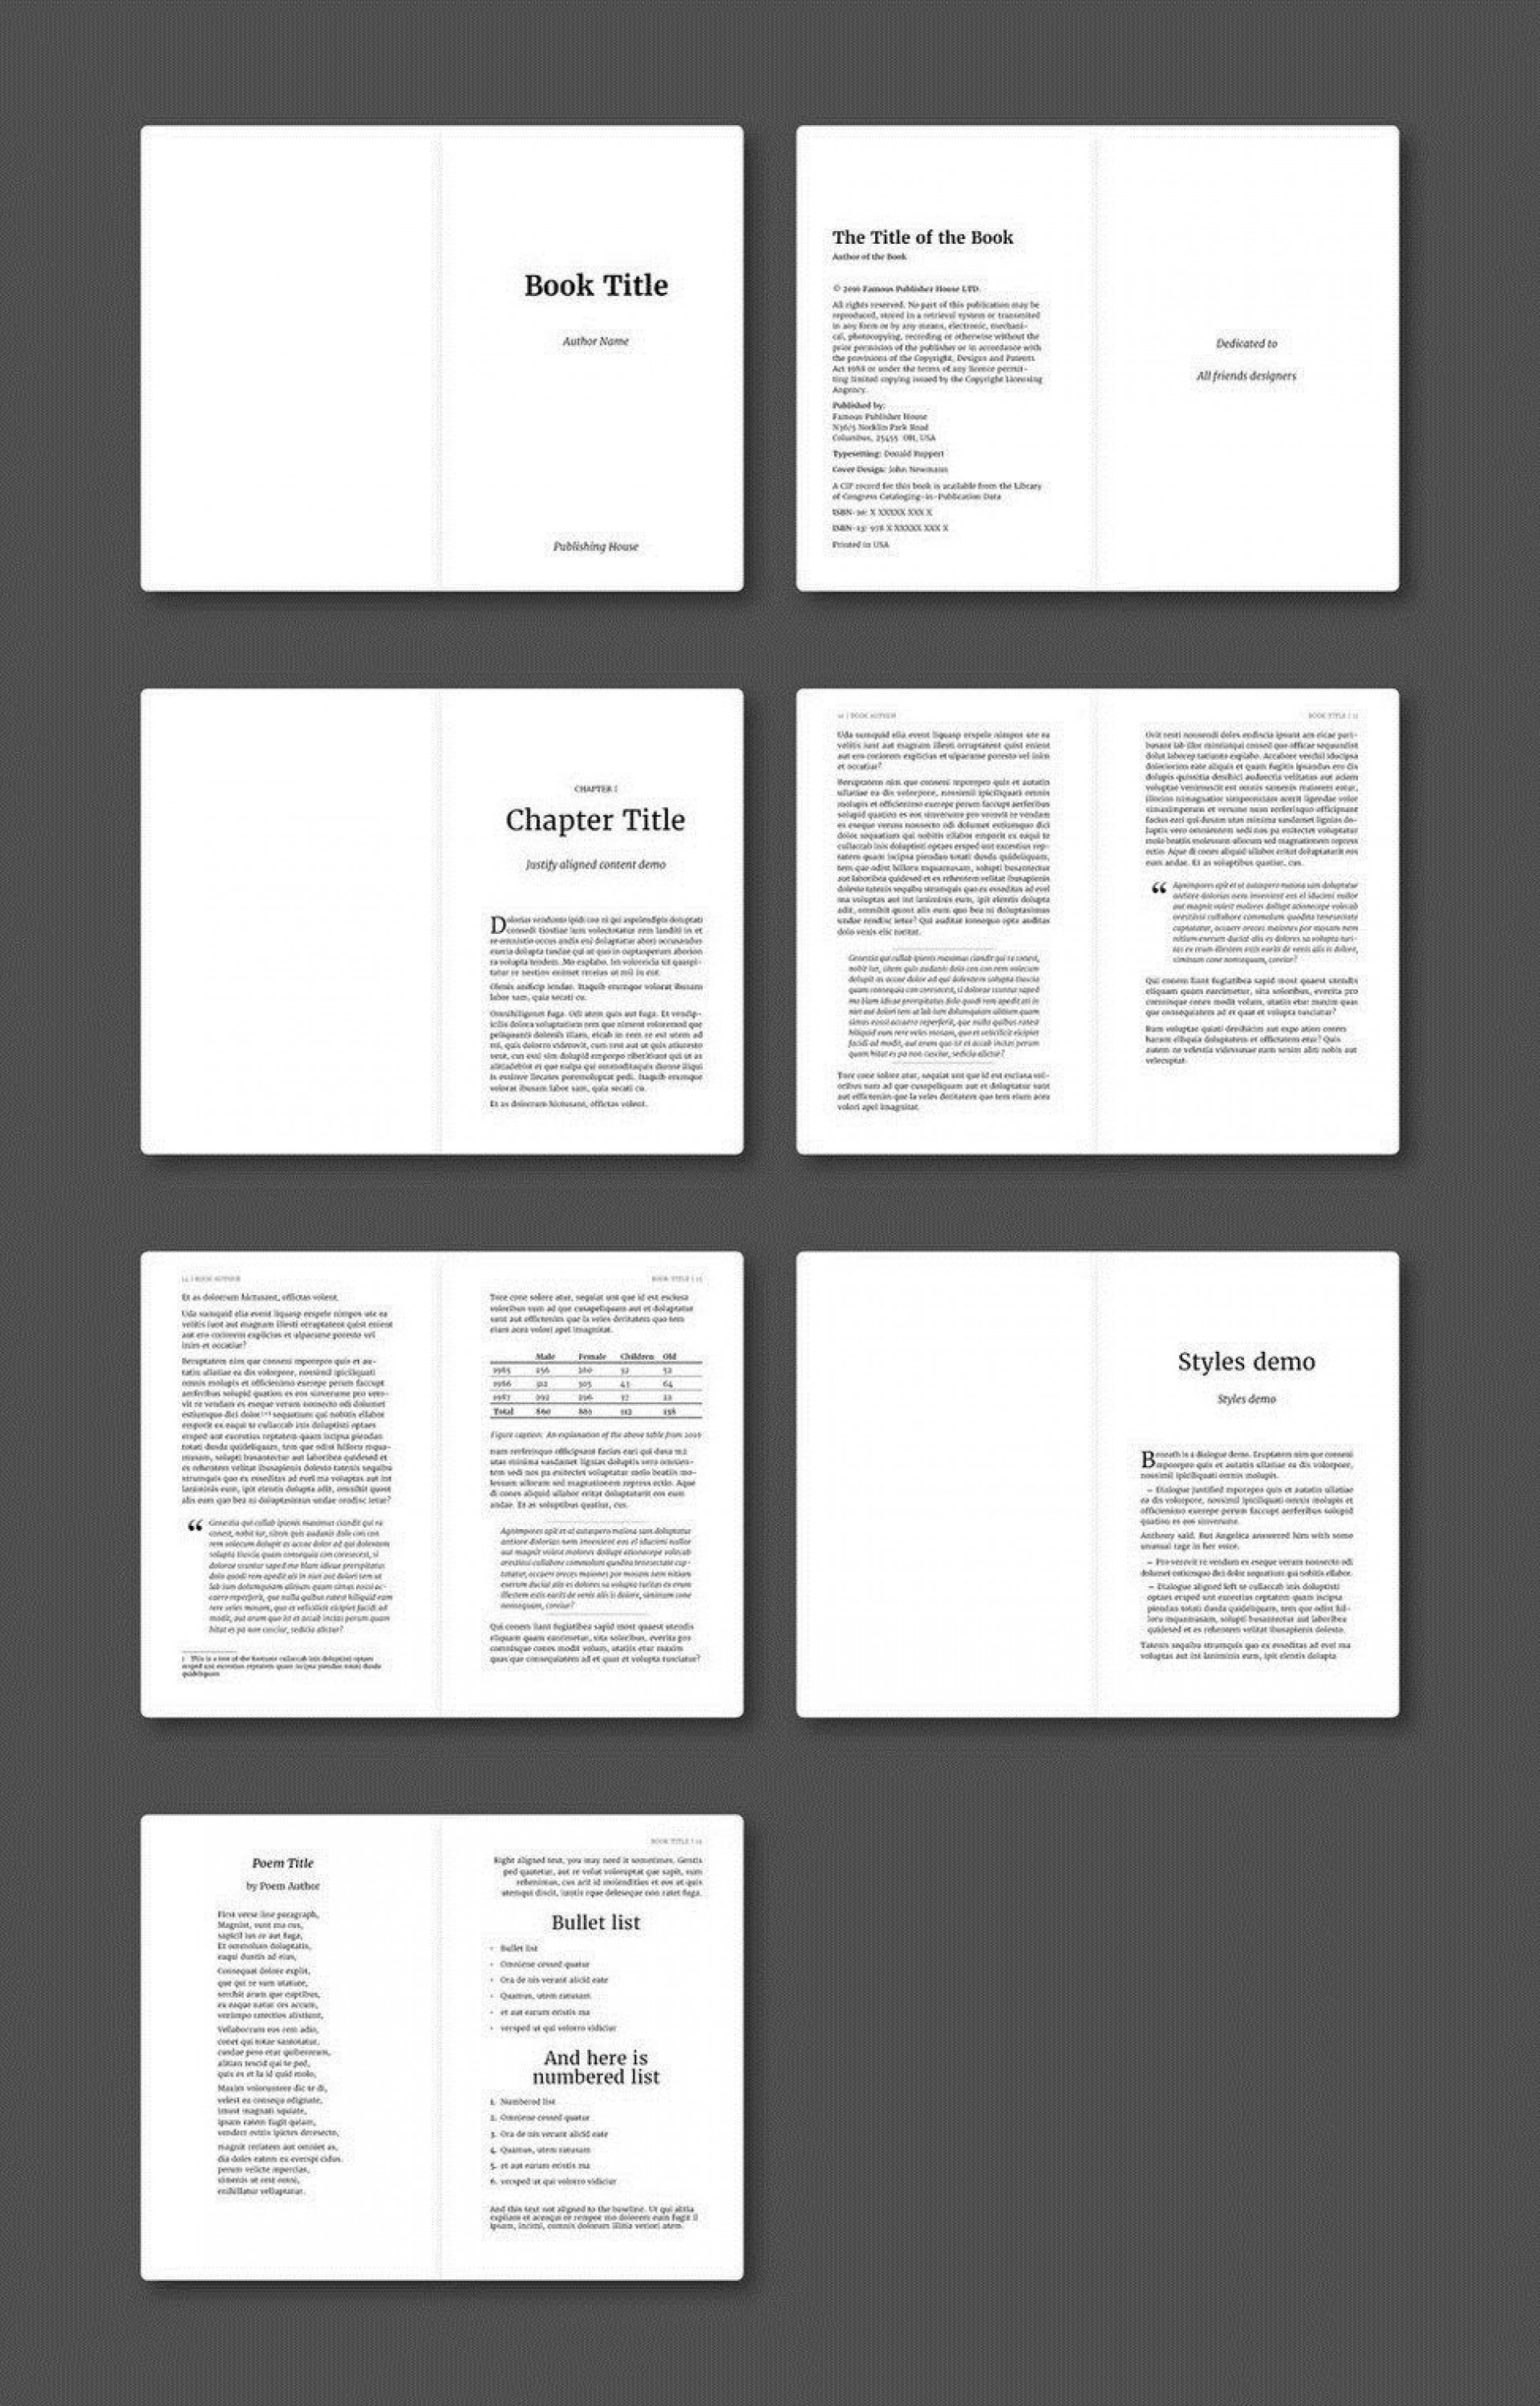 007 Shocking Indesign Book Layout Template High Resolution  Free Download1920